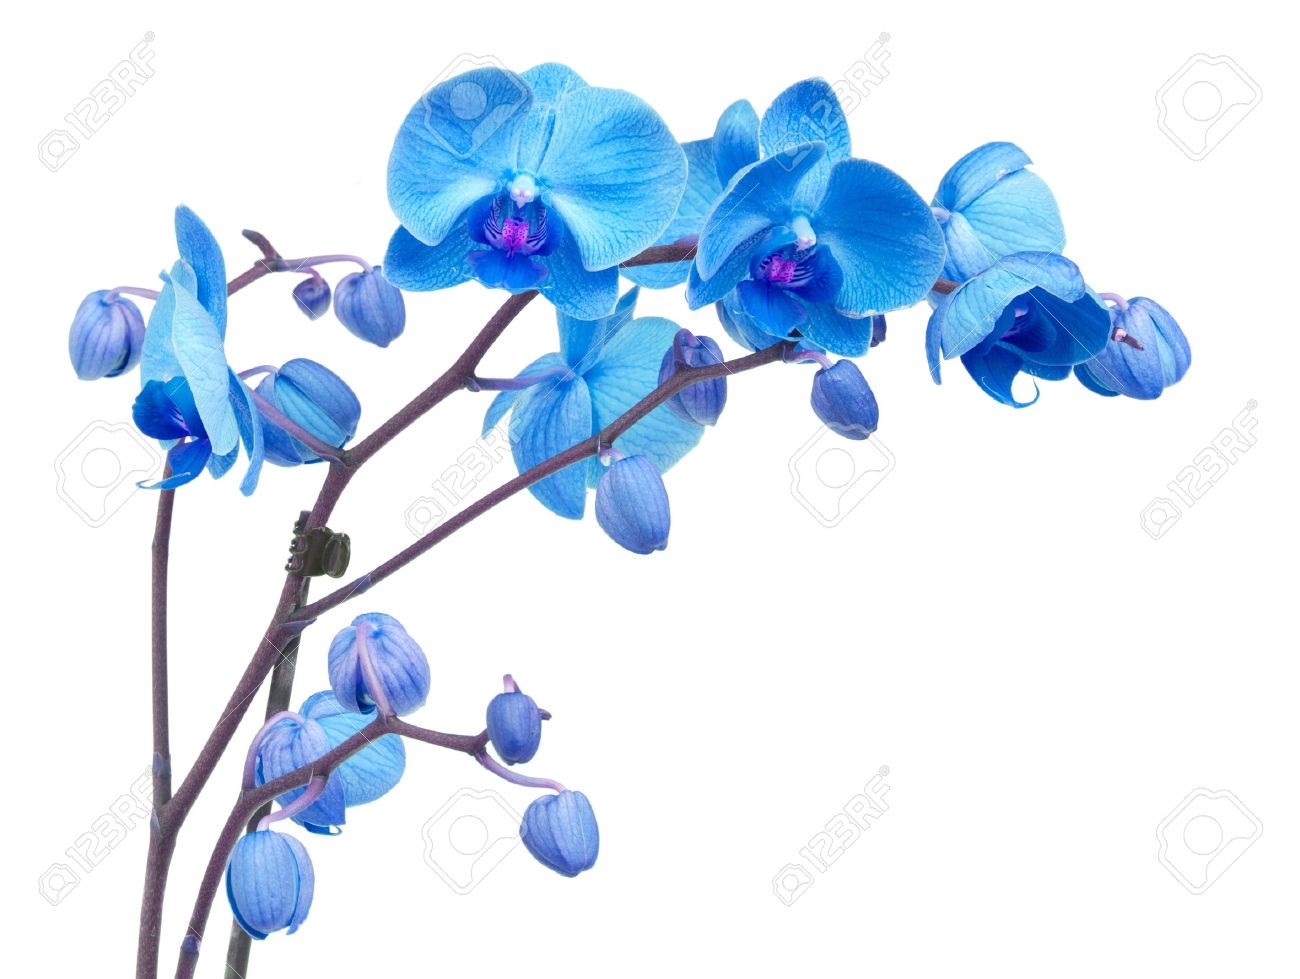 Orchid branch with blue flowers isolated on white background stock orchid branch with blue flowers isolated on white background stock photo 35381559 izmirmasajfo